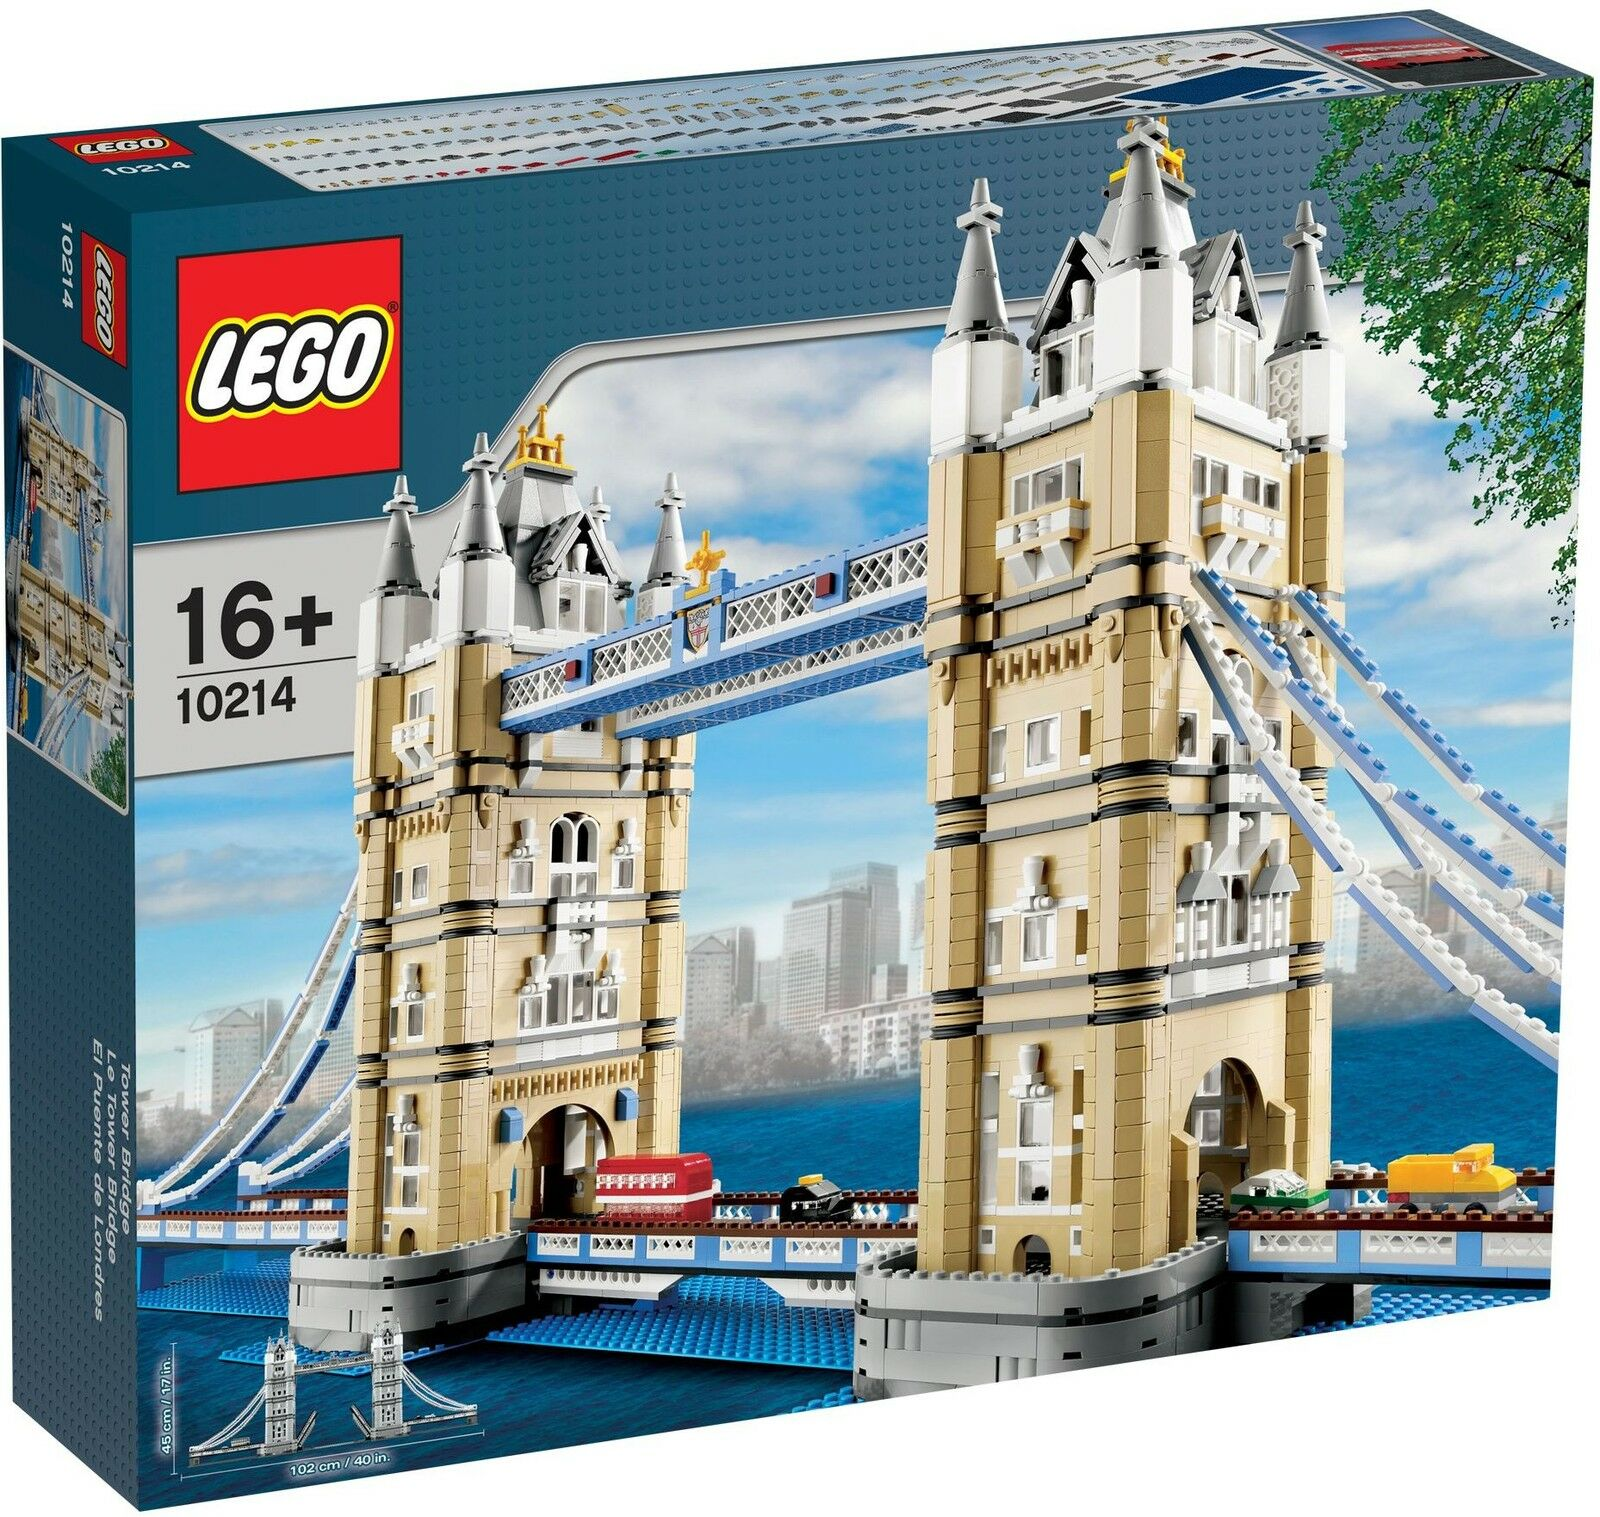 LEGO EXCLUSIF exclusive - 10214 tower bridge-NEUF & OVP